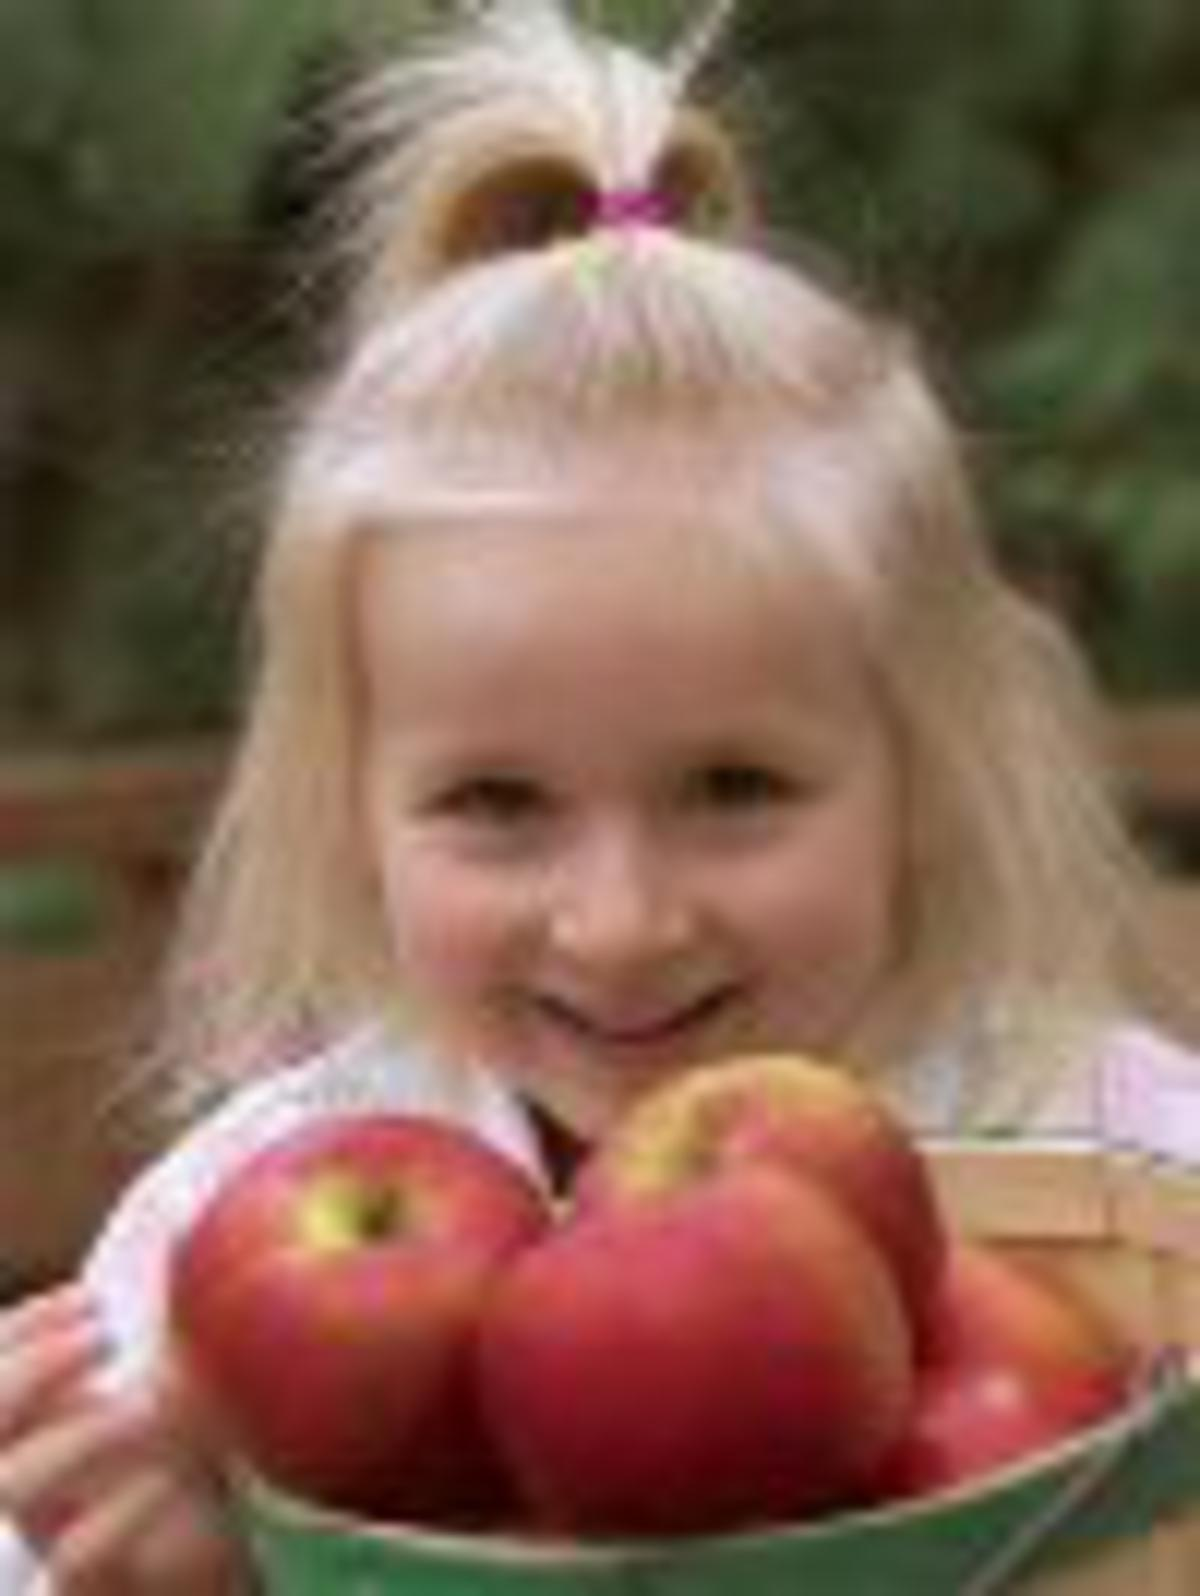 Most Nutritious Apples